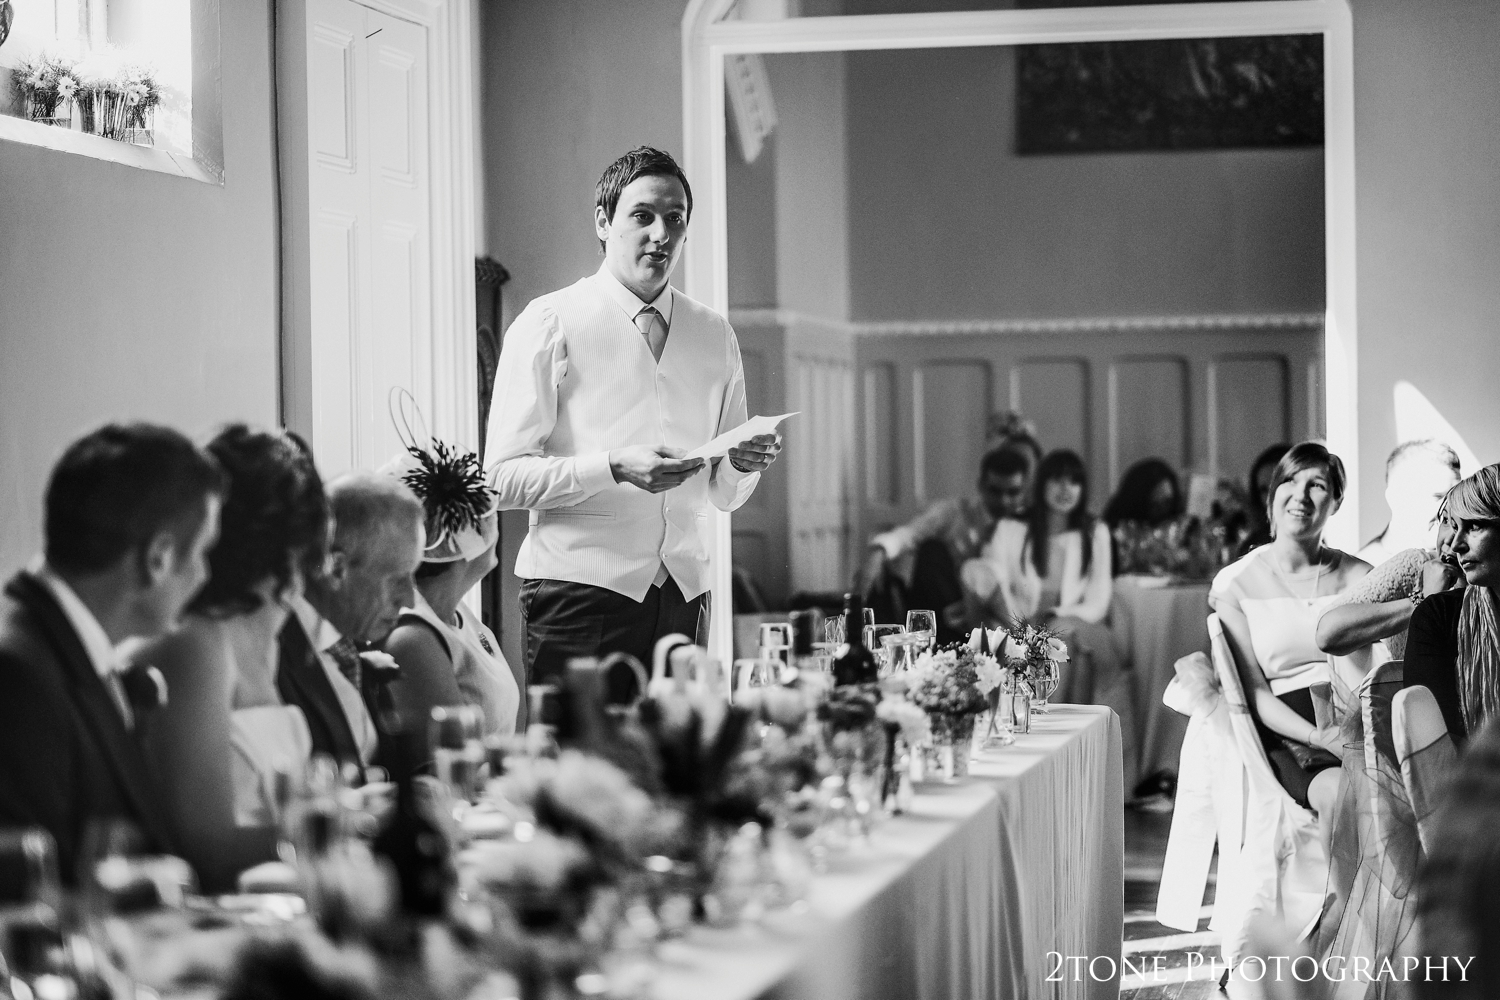 David's best man gave a dignified and respectful speech honouring friendship and toasting the happy couple.